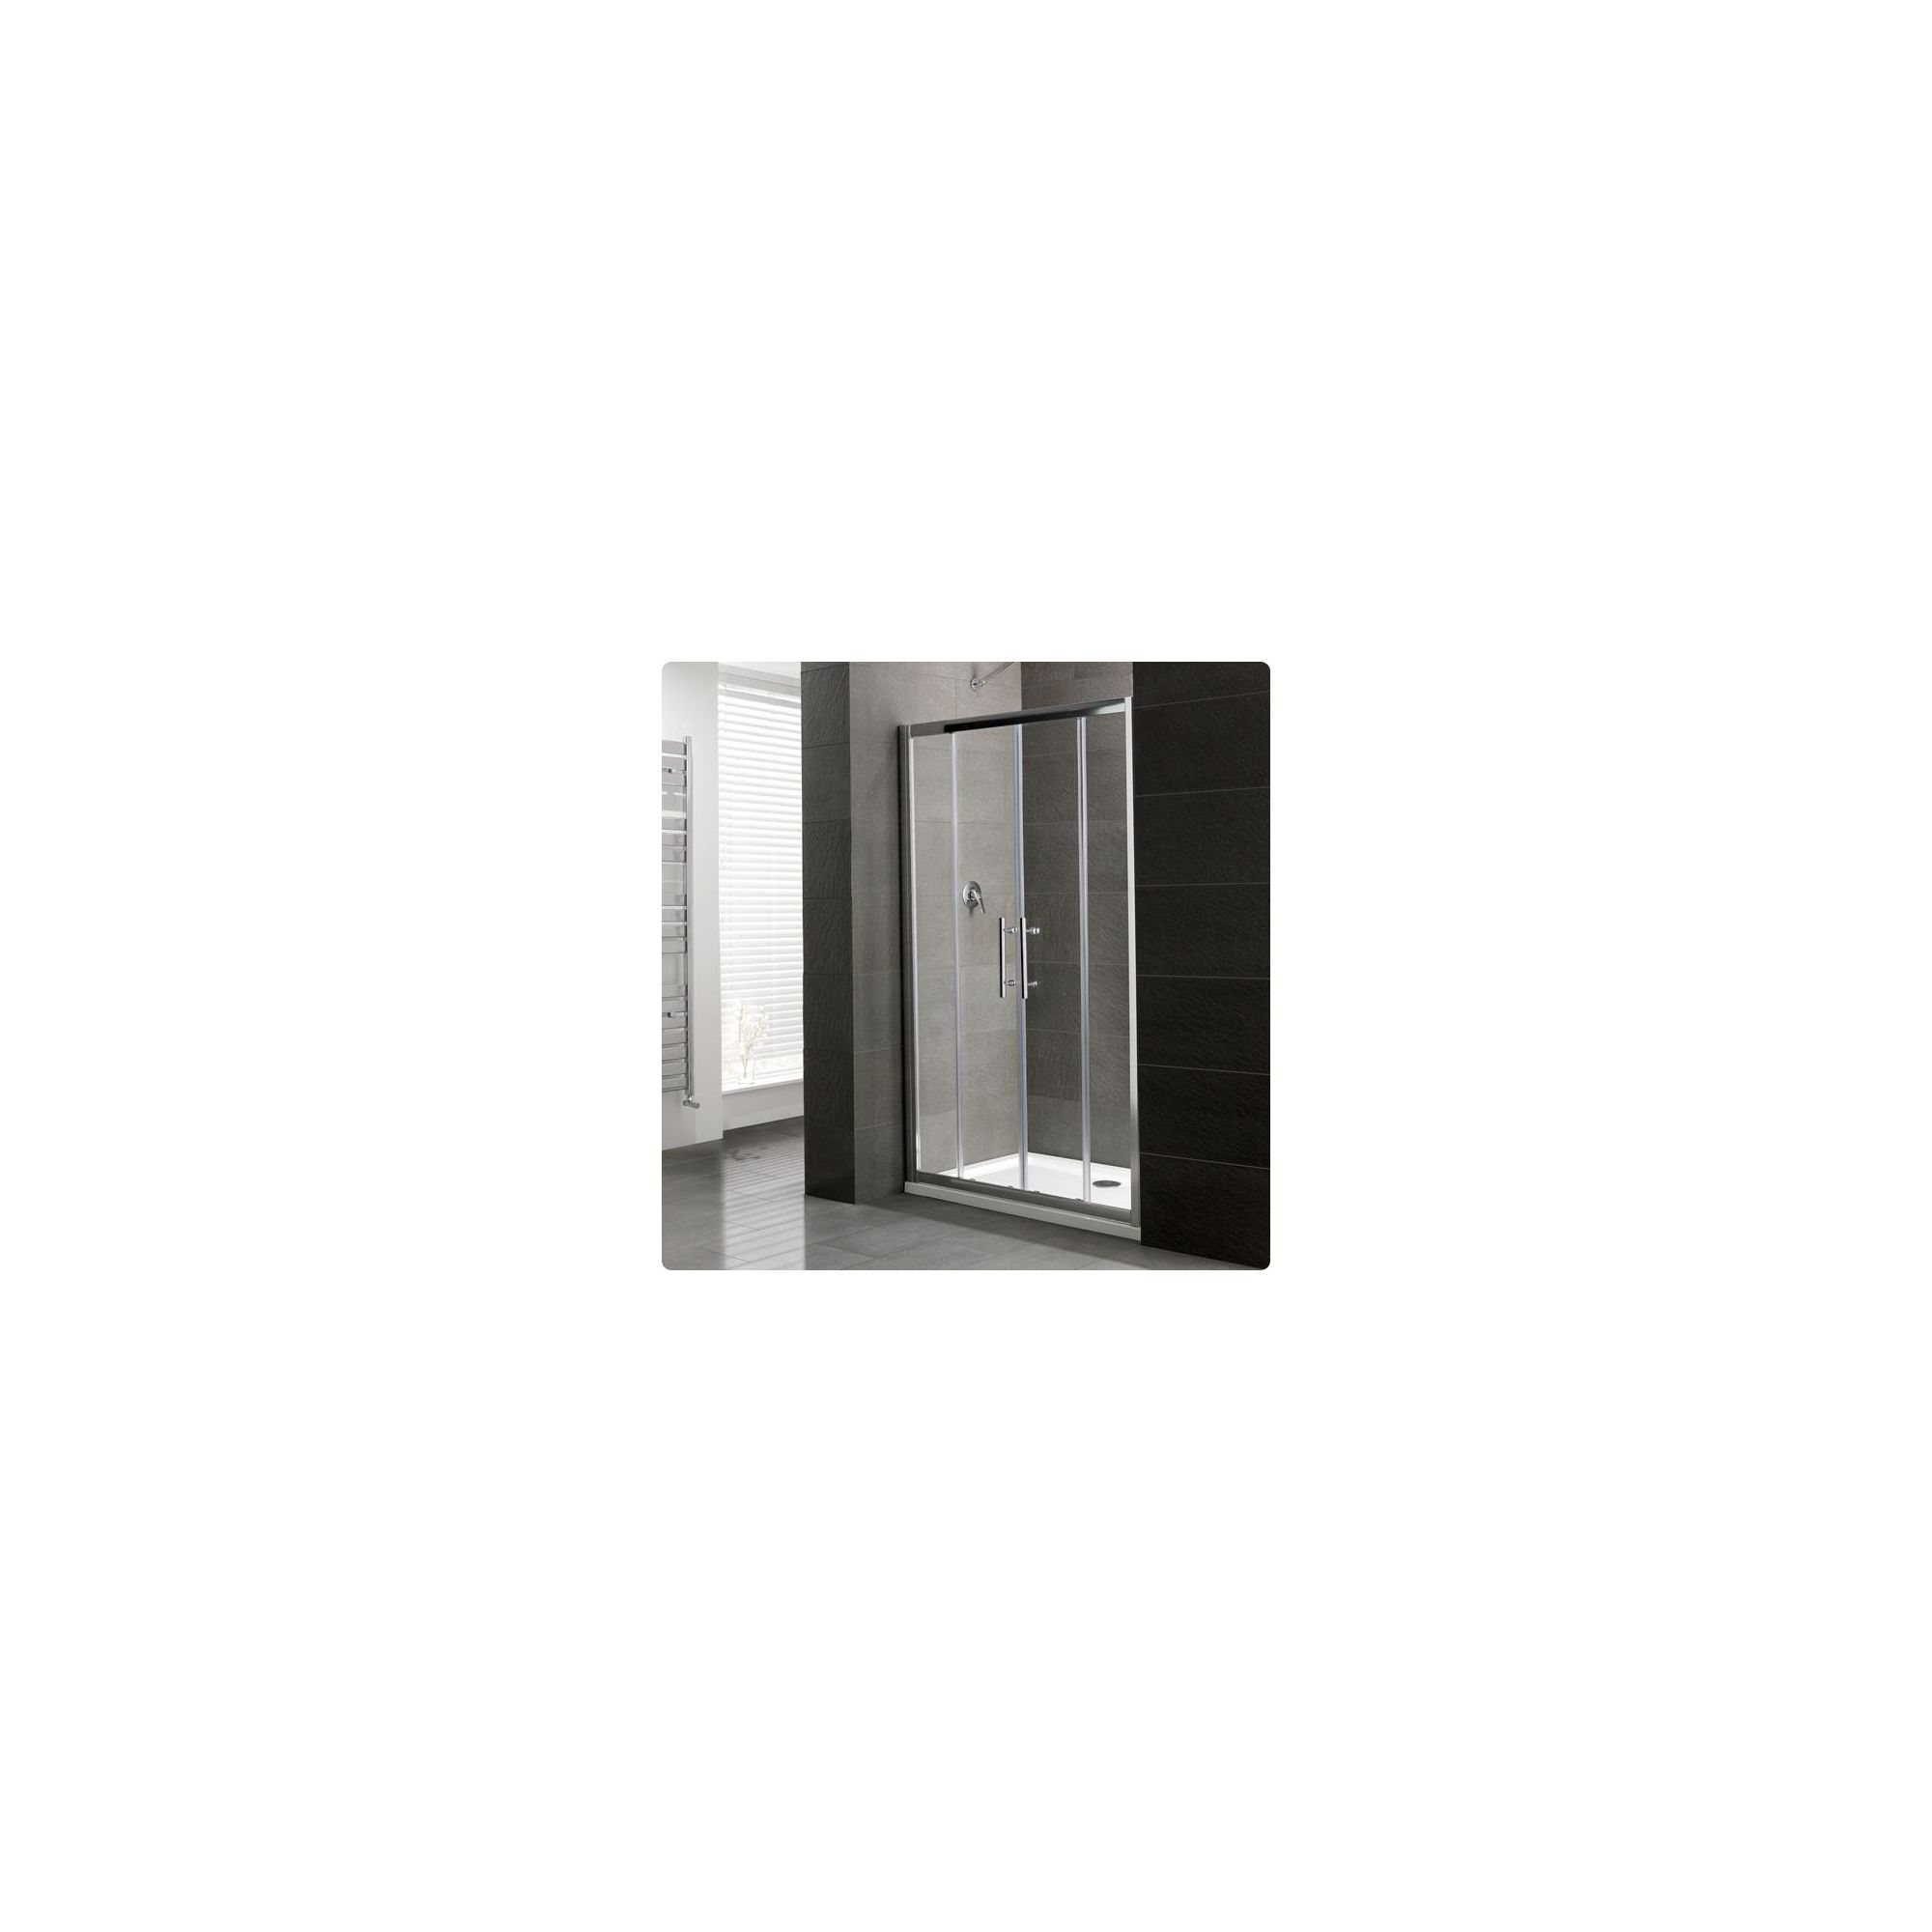 Duchy Select Silver Double Sliding Door Shower Enclosure, 1400mm x 700mm, Standard Tray, 6mm Glass at Tesco Direct